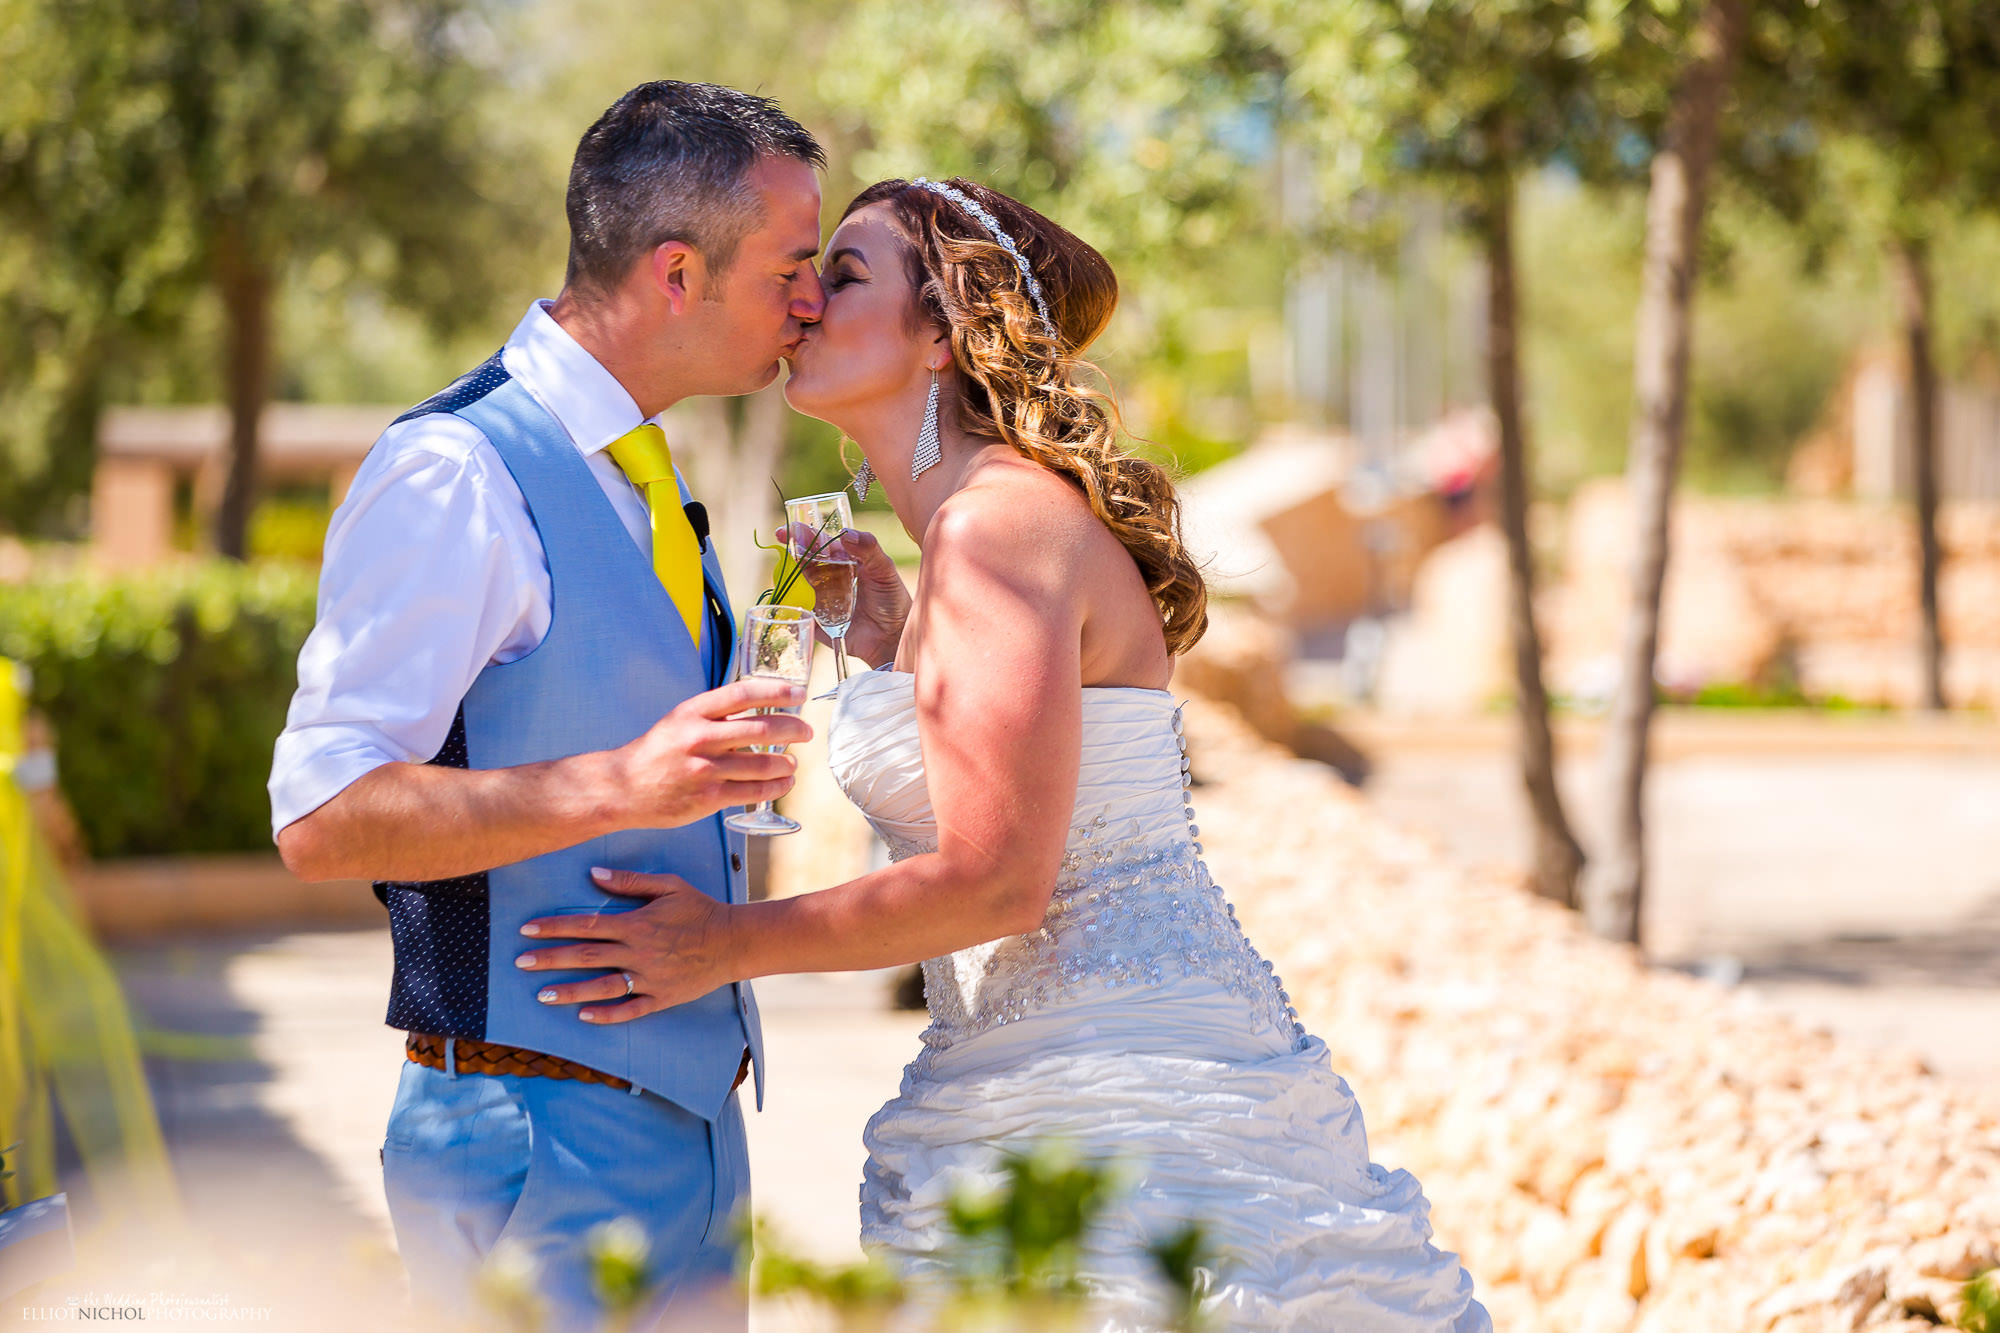 champagne-kiss-bride-groom-wedding-day-photography